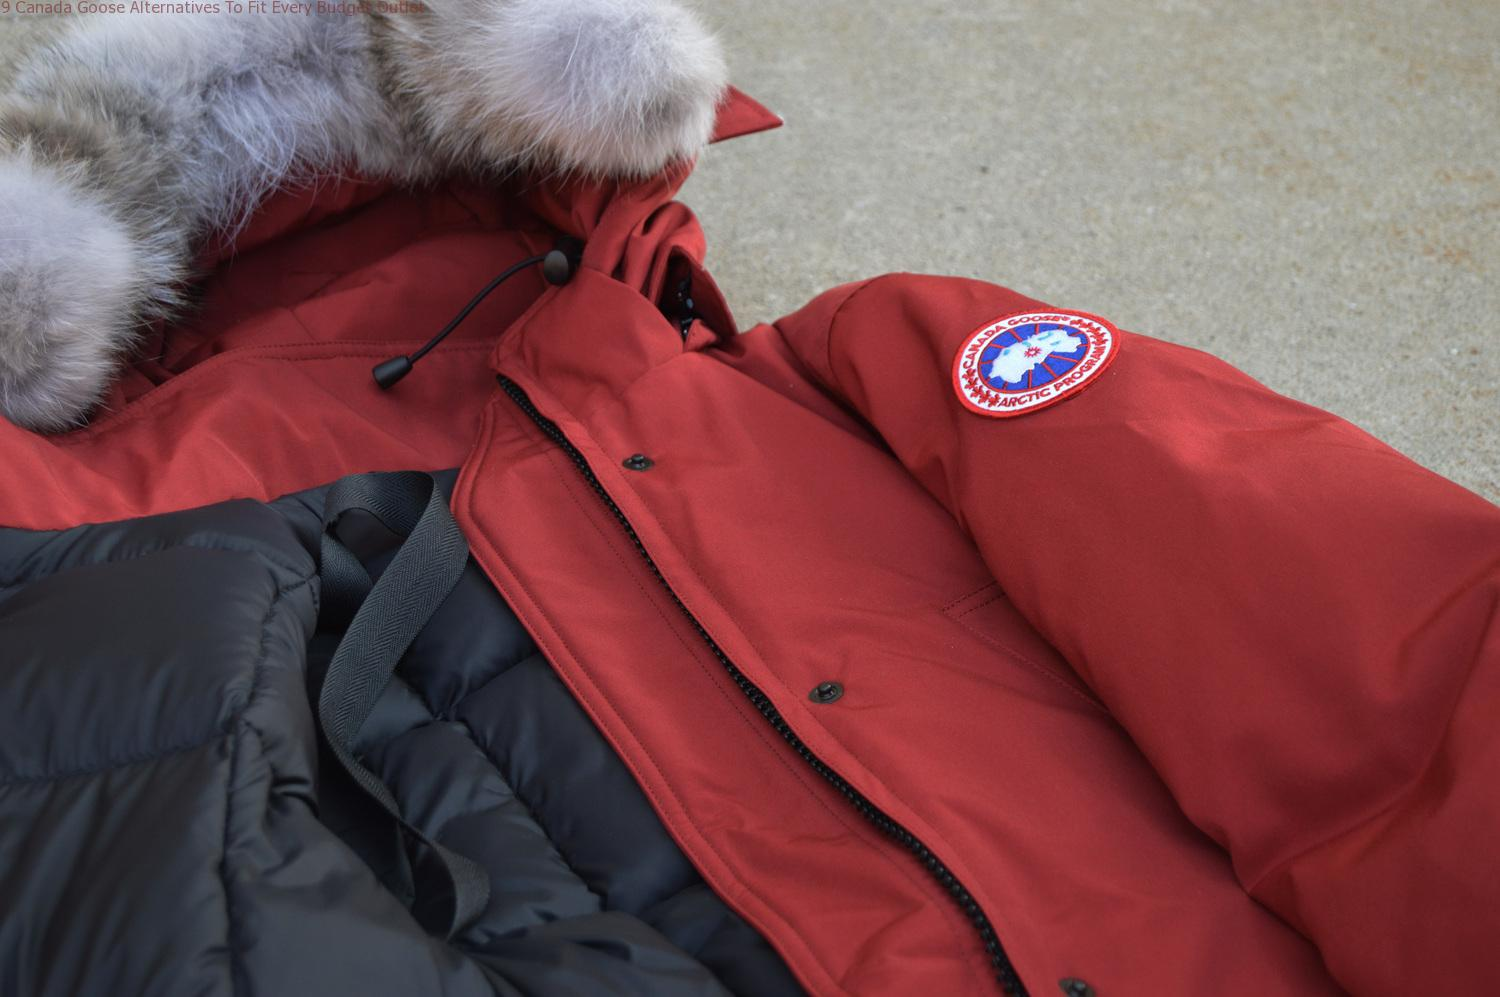 9 Canada Goose Alternatives To Fit Every Budget Outlet